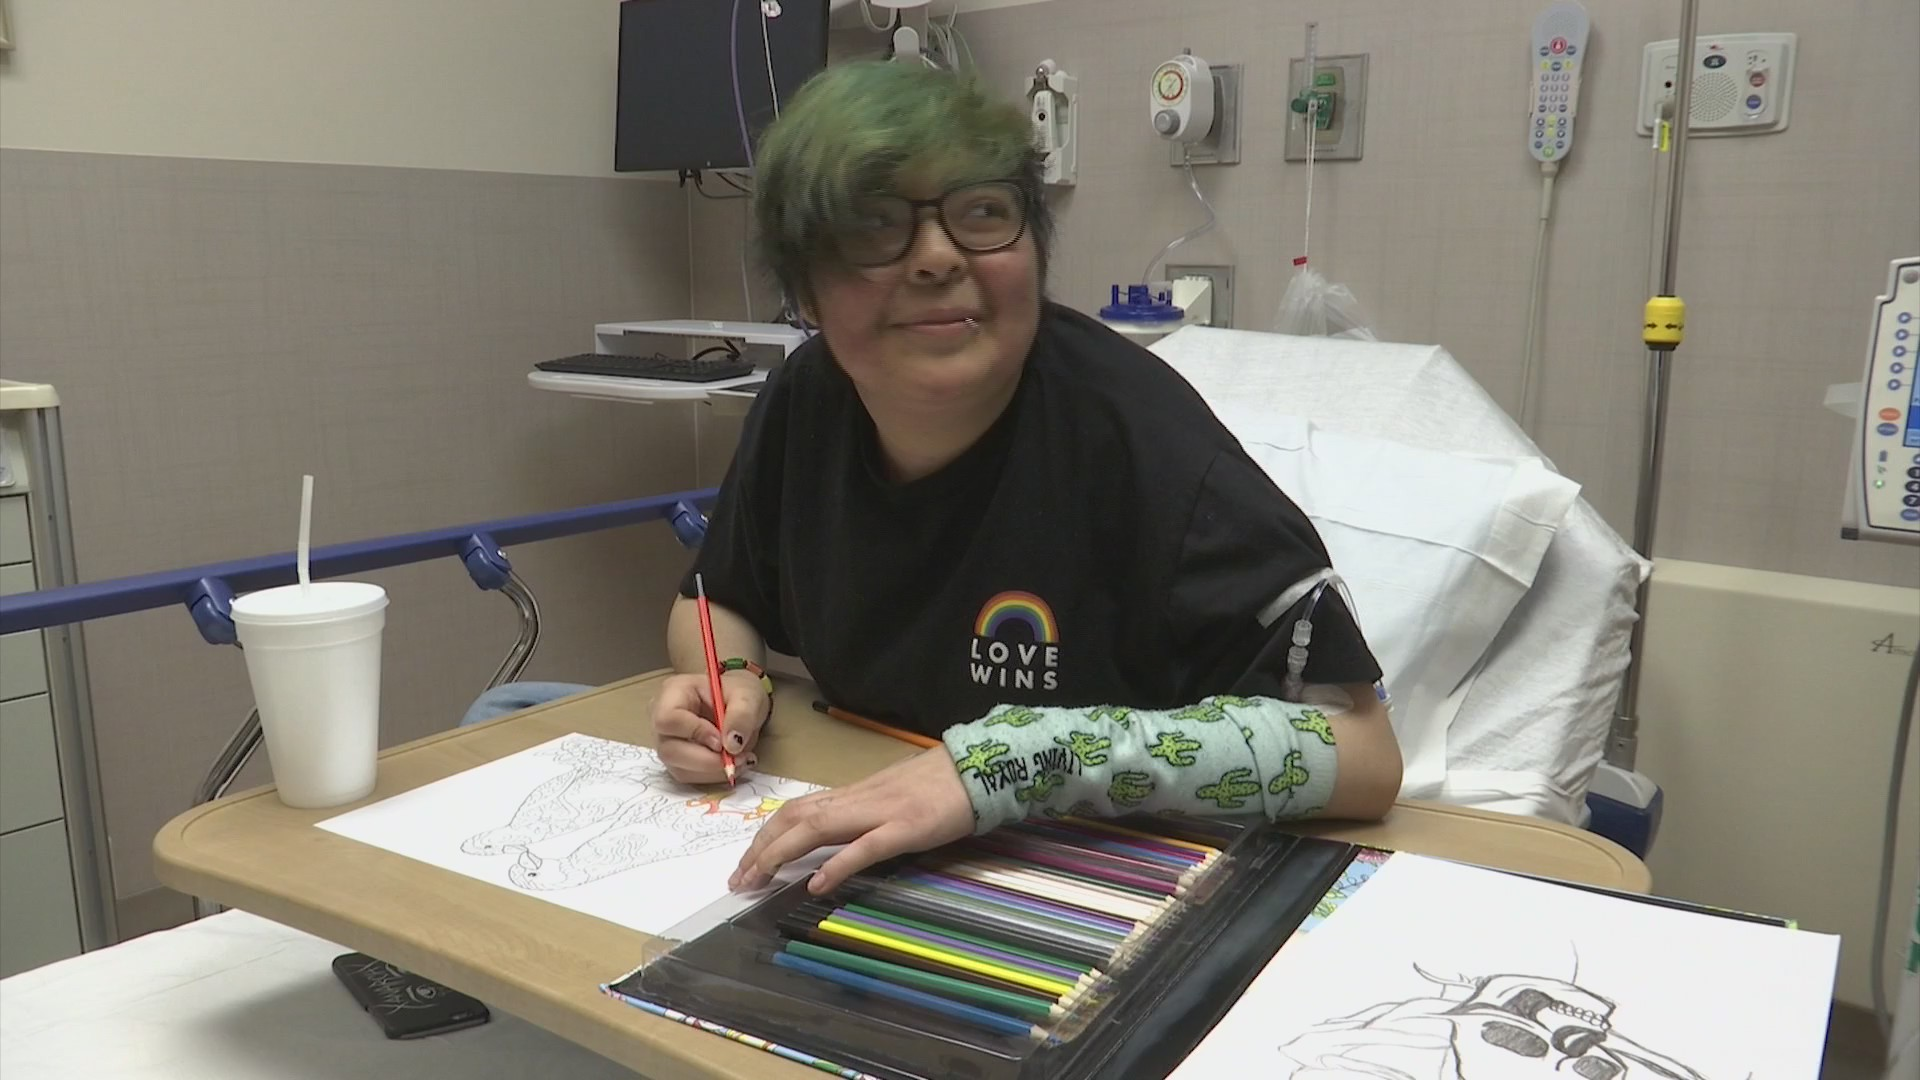 Teenaged Mercyhealth patient enters national hospital gown design contest